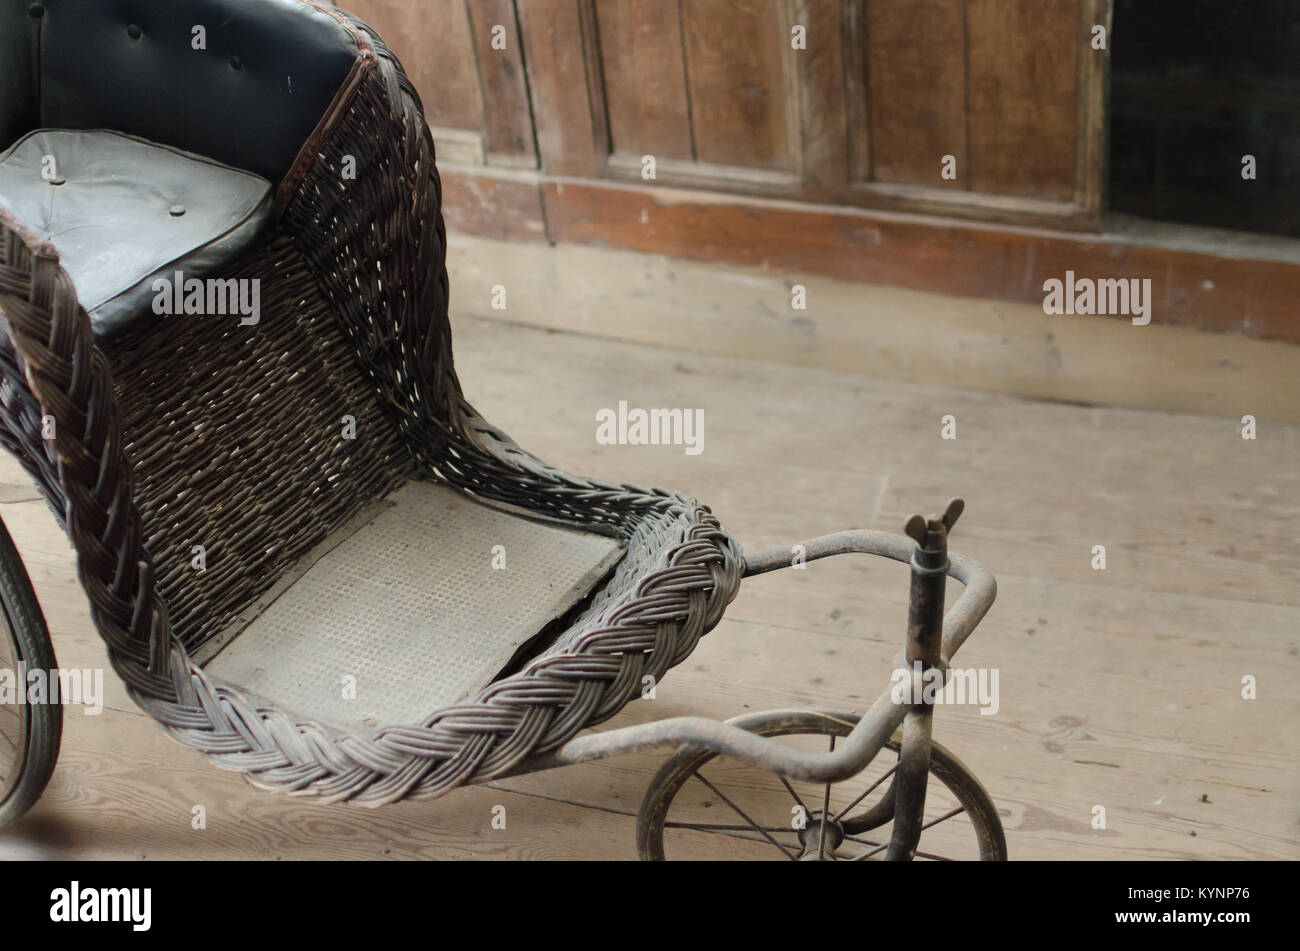 A vintage/retro antique wheelchair, sitting gathering dust in an old  abandoned house. - A Vintage/retro Antique Wheelchair, Sitting Gathering Dust In An Old